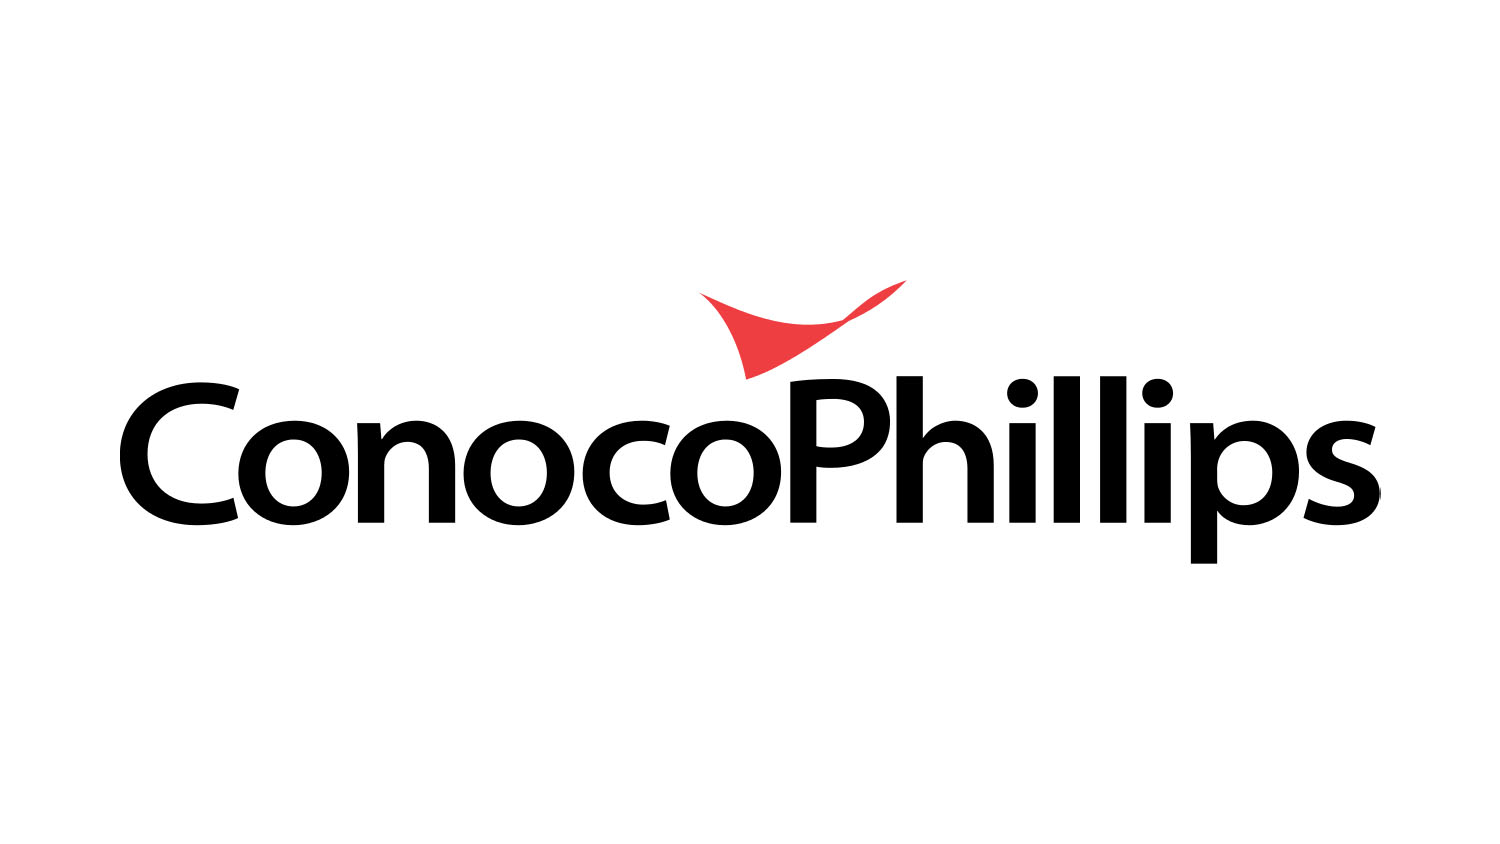 conocophillips-logo-eps-png-conocophilips-logo-1500